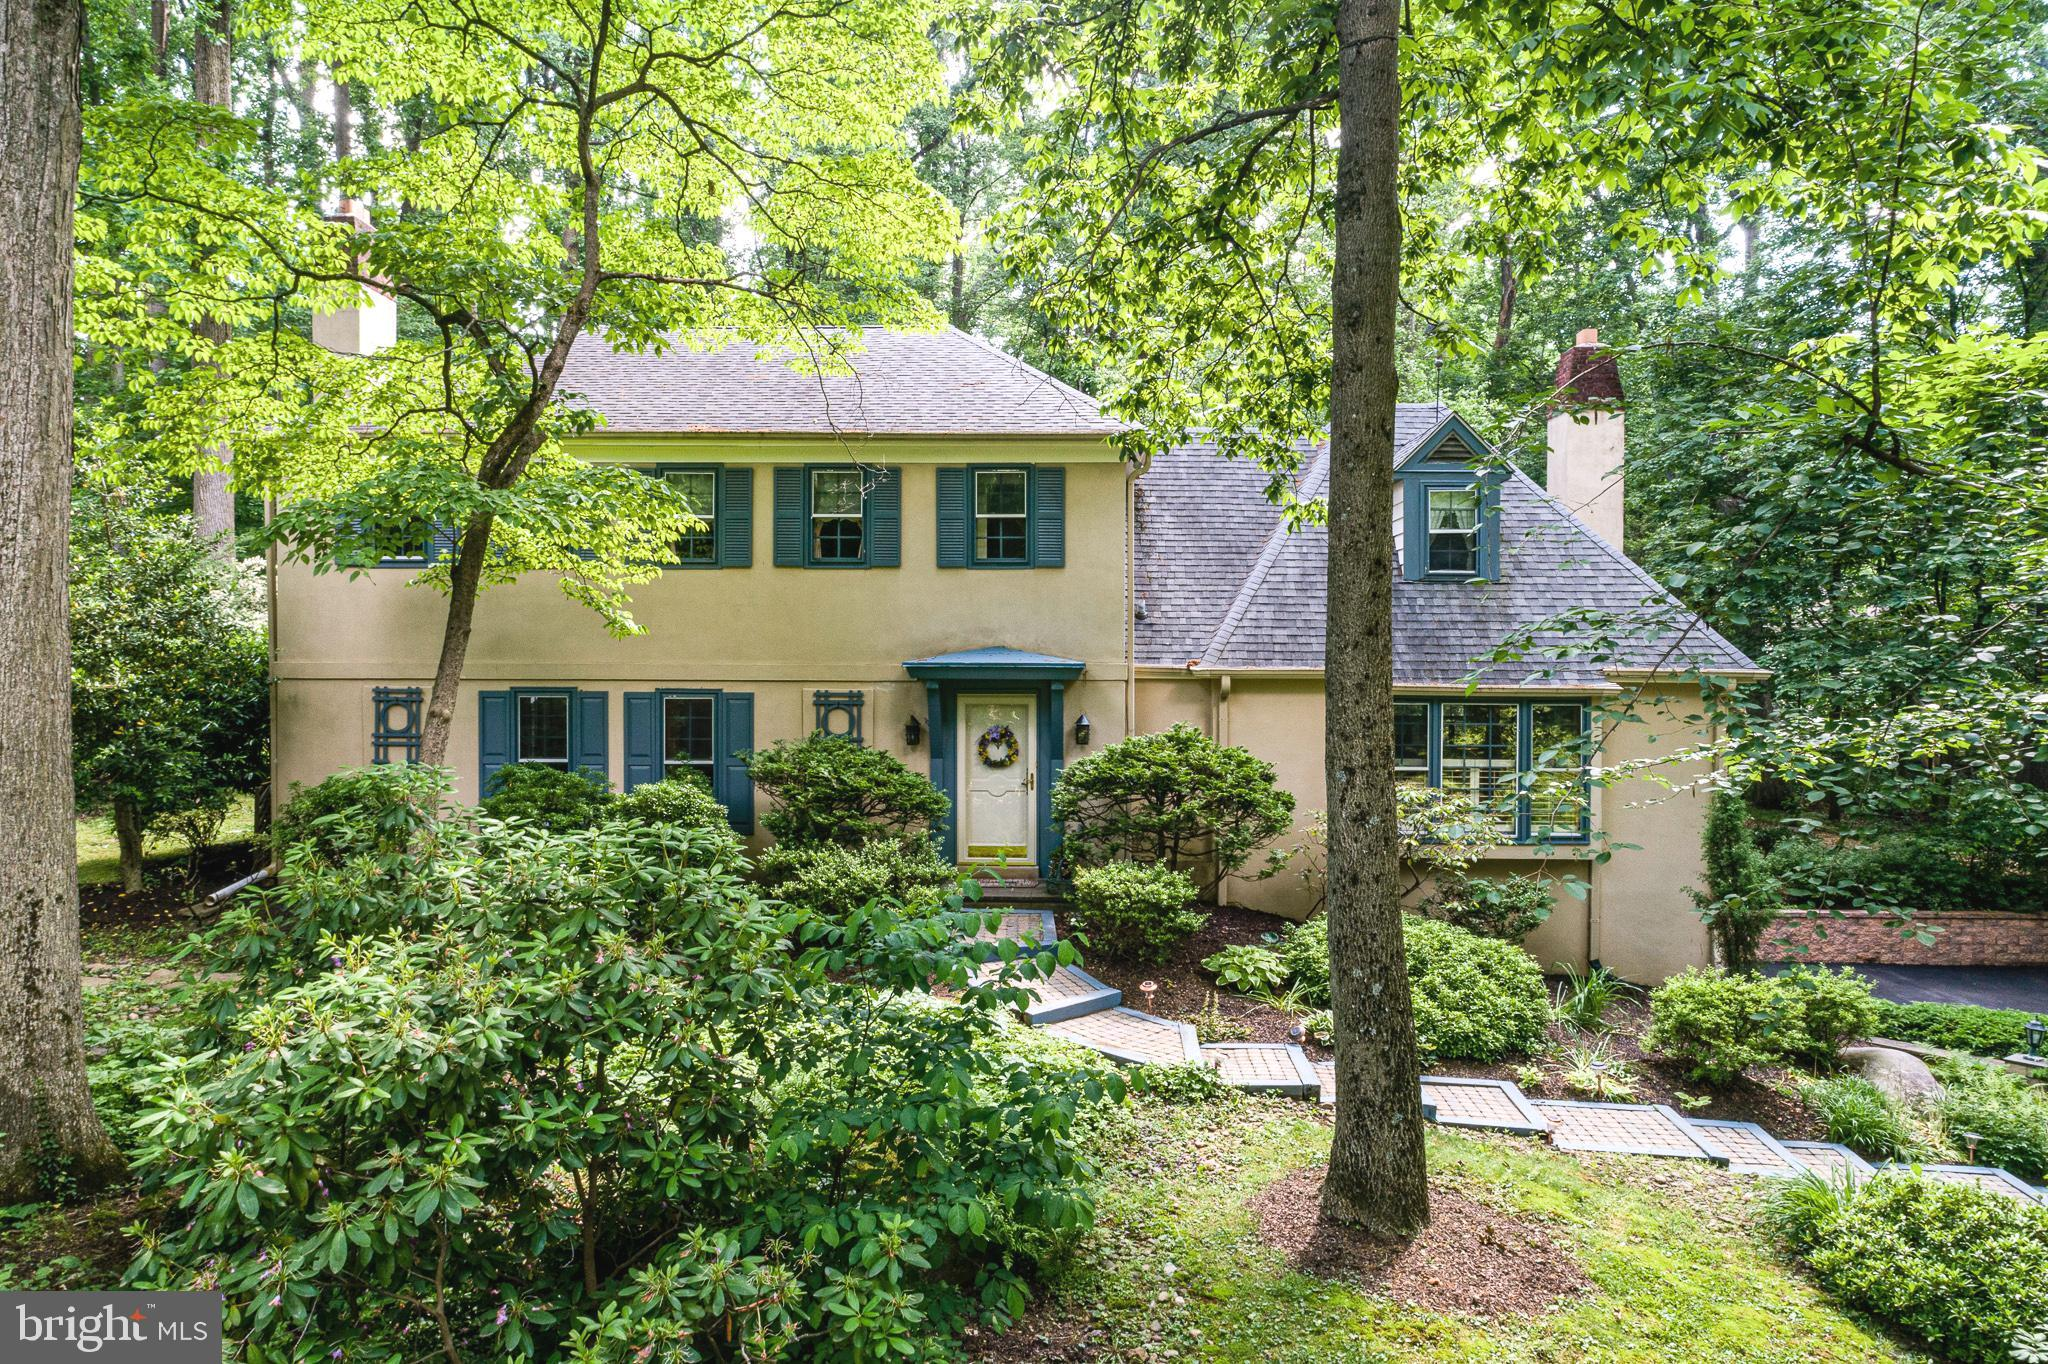 Are you looking for an Oasis,  a place to enjoy nature but still be within minutes of all Newtown Square has to Offer?  Set on a quiet cul-de-sac in the sought-after Green Countrie neighborhood this home has it all!  Step into the backyard and you are surrounded by the beautiful plantings and award-winning water gardens, with extensive hardscaping, a charming Gazebo tea house and mature Landscaping for privacy, you won't believe you are in the heart of Newtown Square!  Entering this picturesque French Colonial you are greeted by the generous entry foyer and drawn in by the beautiful hardwood floors, sunlit spaces, and an open flowing floor plan perfect for entertaining.  The Gourmet eat-in kitchen features a granite-topped island with prep sink, designer backsplash, custom cabinetry, under cabinet lighting, sub zero refrigerator & high end stainless steel appliances. The kitchen is open to the breakfast room with bay window allowing for sunshine to stream in and beautiful views of the back gardens. The kitchen opens to the dining room which has French Doors that open onto the patio, perfect for indoor/outdoor entertaining.  The dining room is open to the oversized living room, which has room for multiple seating areas and features a wood burning fireplace with marble surround. A large Family room also with a fireplace has a built in bar and is a wonderful spot to entertain.  A mud room, laundry room and updated powder room complete this level.  Upstairs there are 4 Bedrooms and 3 full baths.  The expansive Primary Bedroom Suite is impressive with double closets, dressing area and a full bathroom.  At the end of the hall is an en suite bedroom with neutral bath. Bedrooms 3 & 4 share the renovated hall bath with double vanity and soaking tub/shower combo.  The lower level has a rec room area, a powder room, a work shop and a private den/office.  This leads to the two car garage also with ample storage space.  Outside is a stunning oasis with beautiful gardens that blo